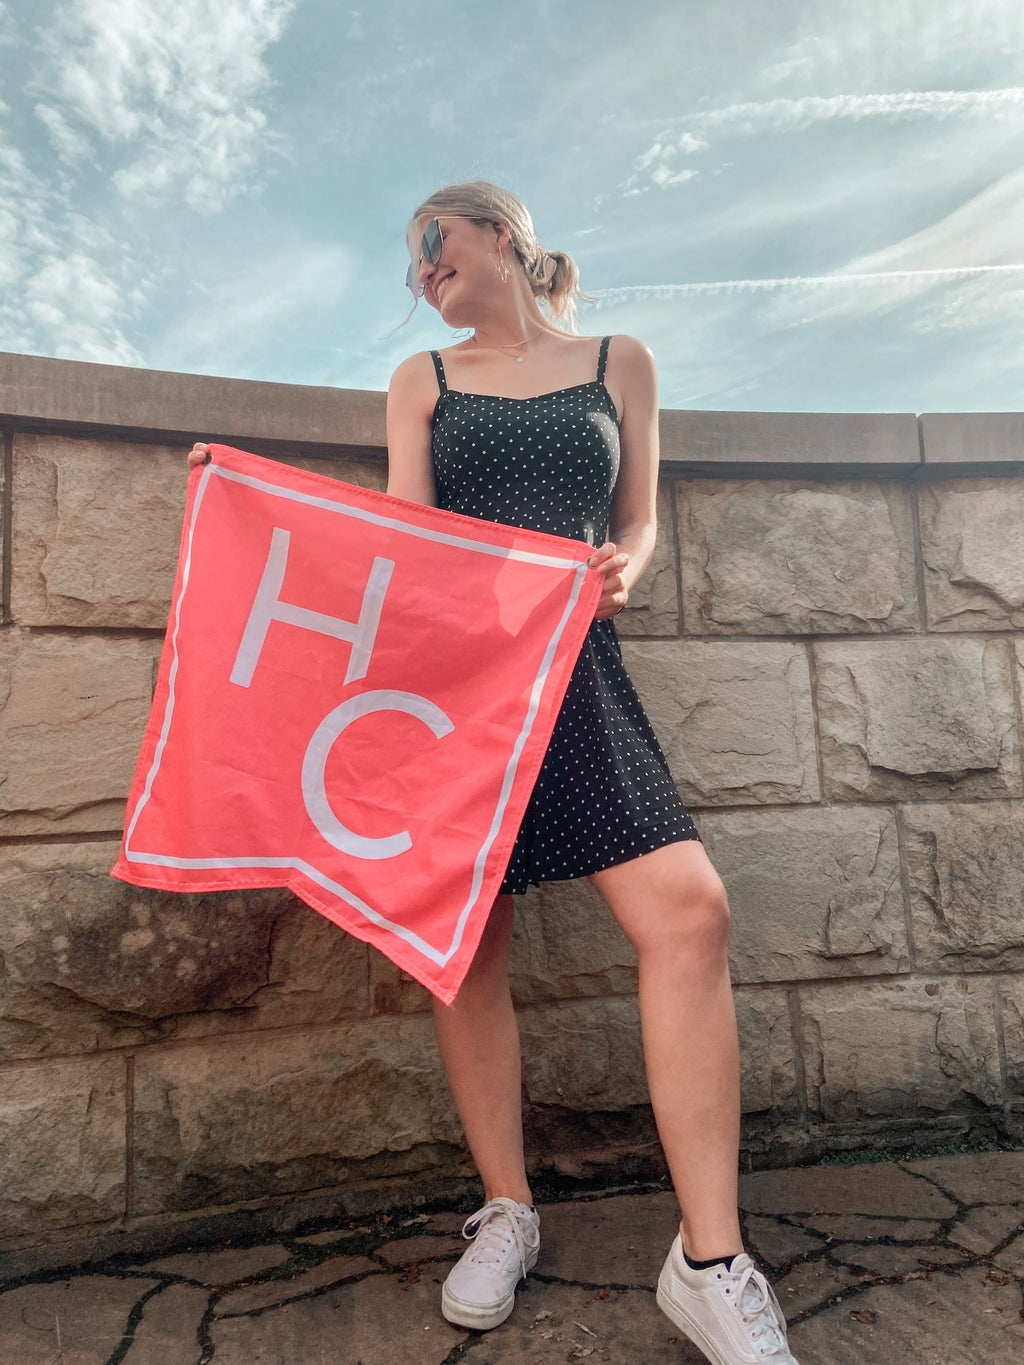 Me standing with the HC flag